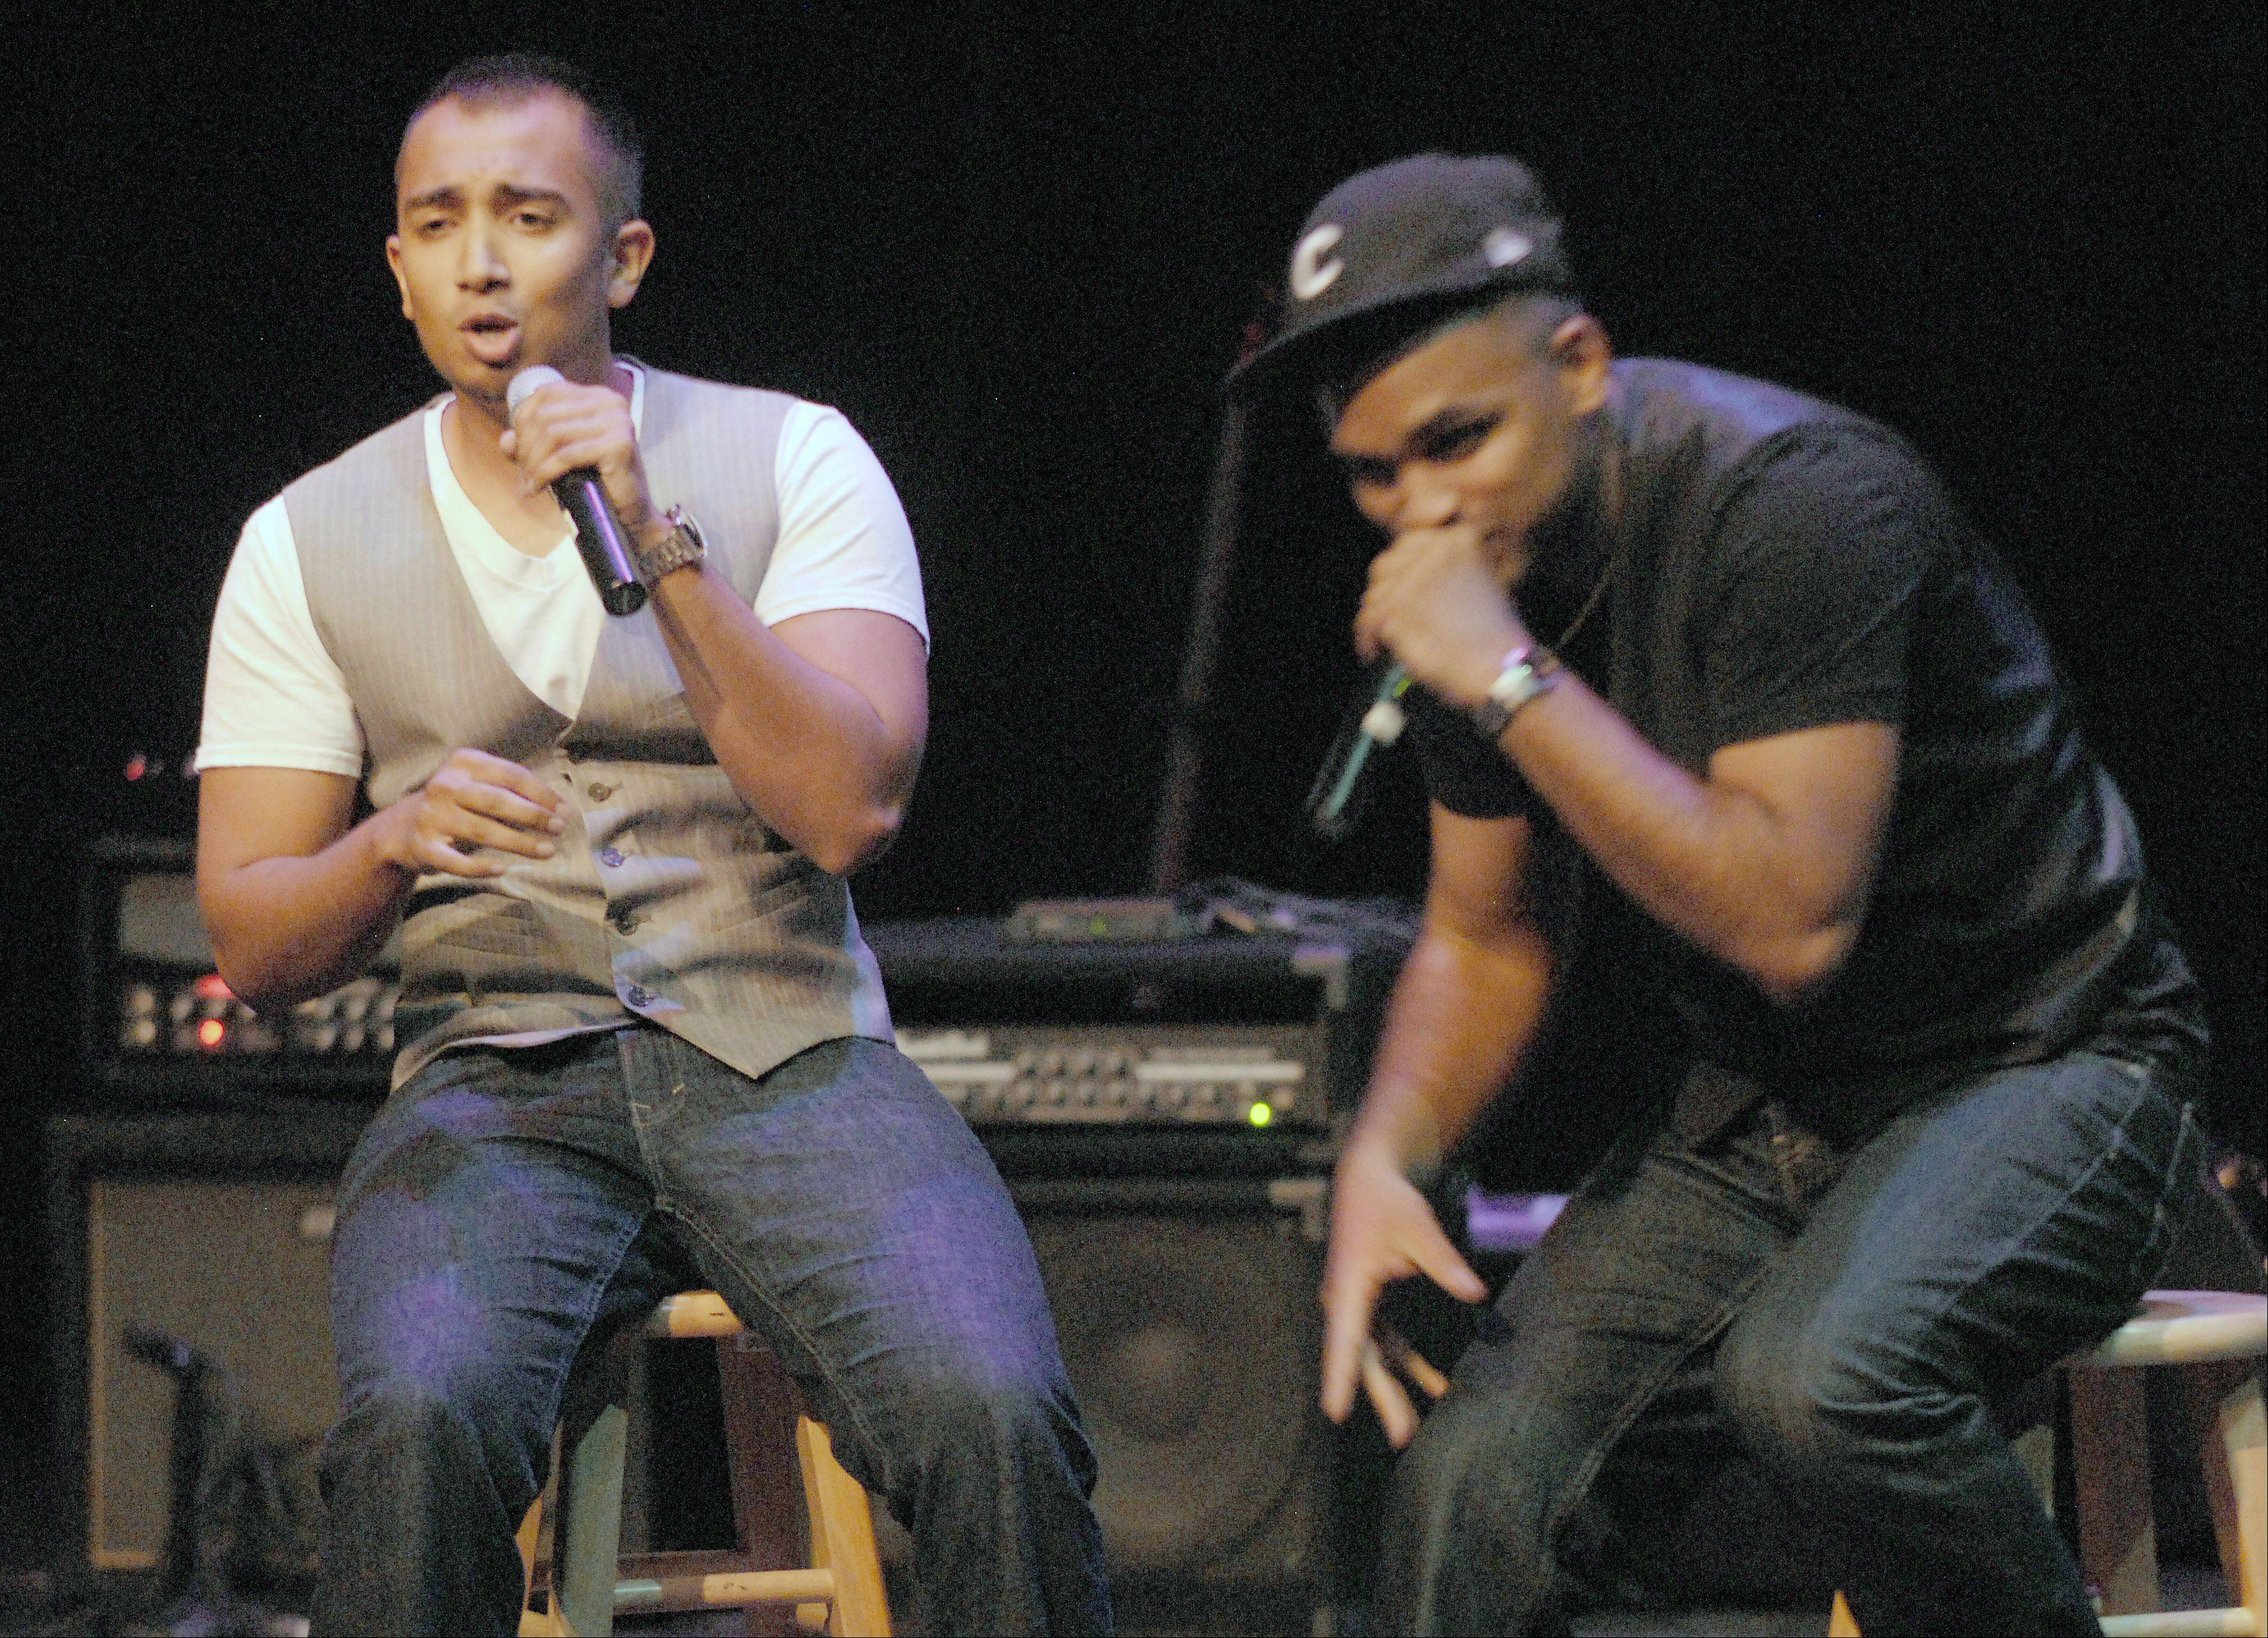 iLLest Vocals, featuring Sanu John of Skokie and Shawn Kurian of Wheeling, perform last August as one of the five finalists of Suburban Chicago�s Got Talent. The duo won the contest last year.